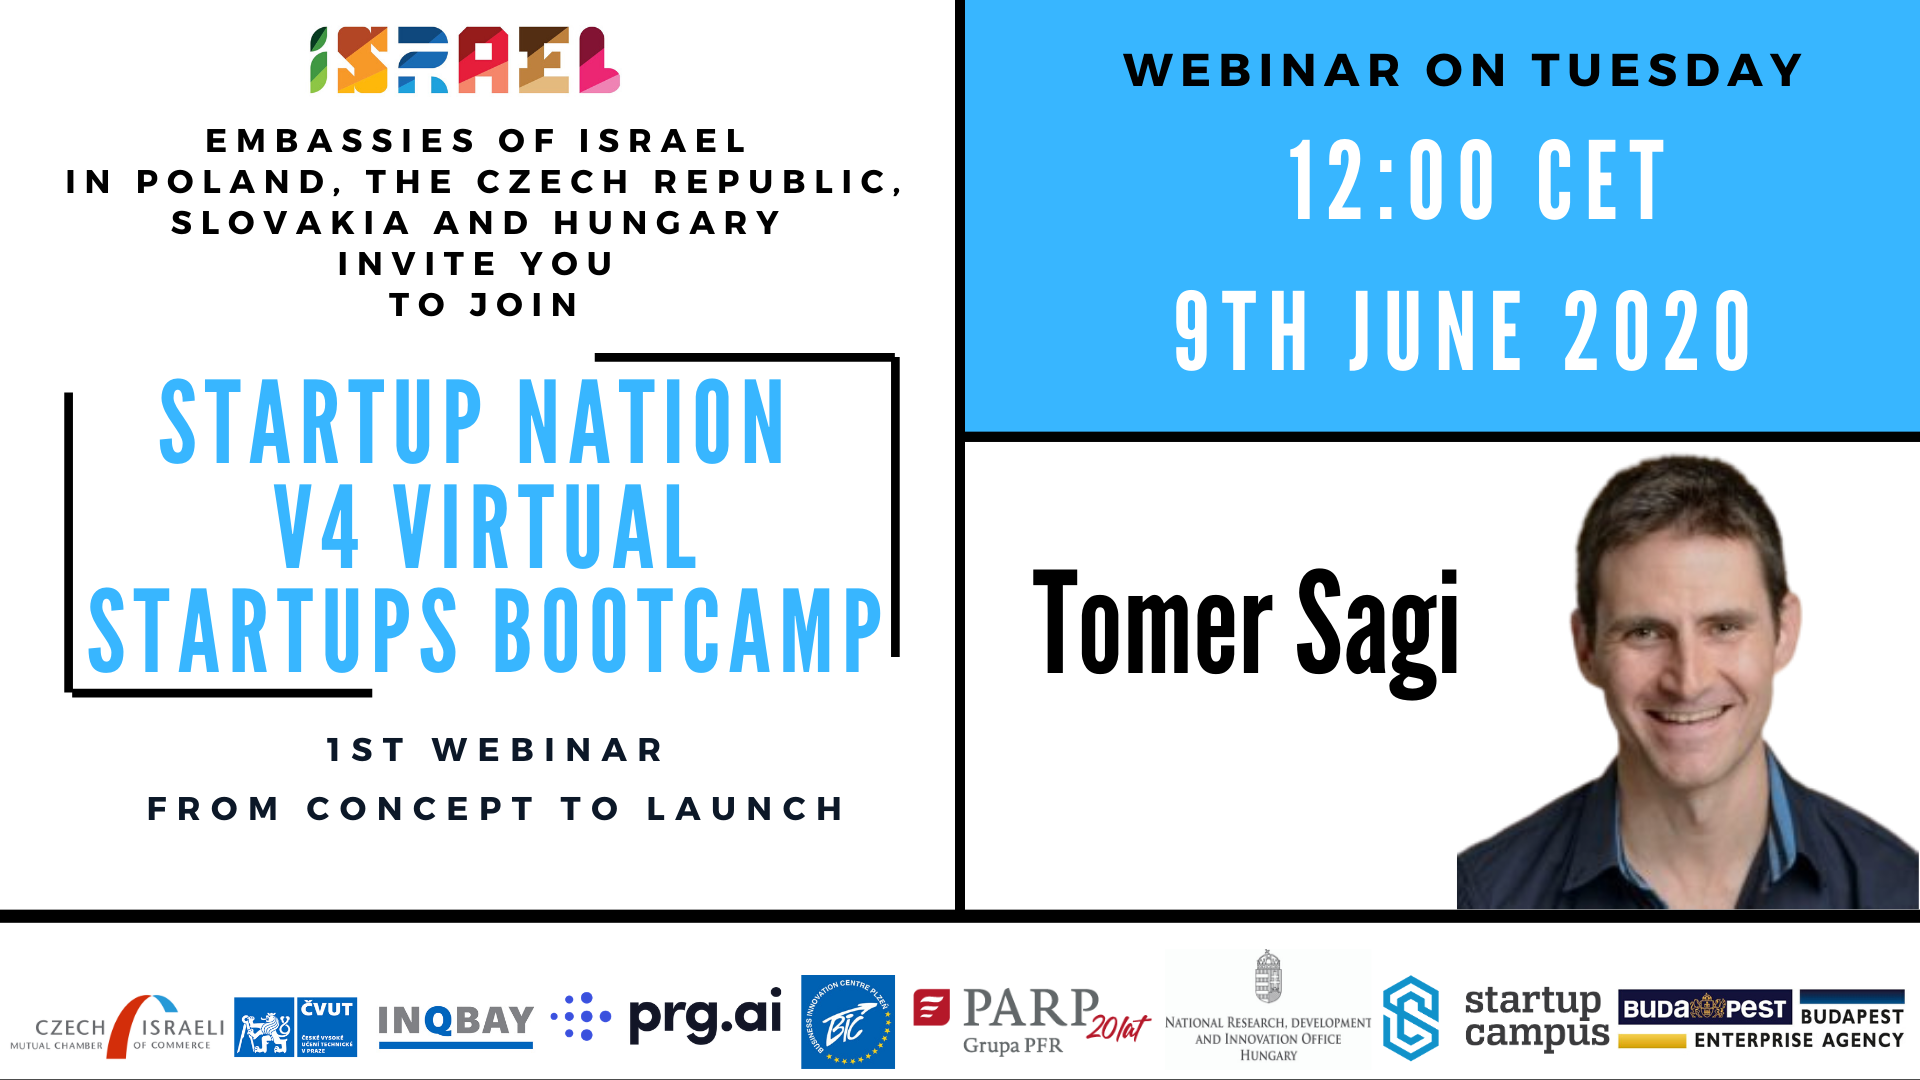 Startup Nation V4 Virtual Startups Bootcamp